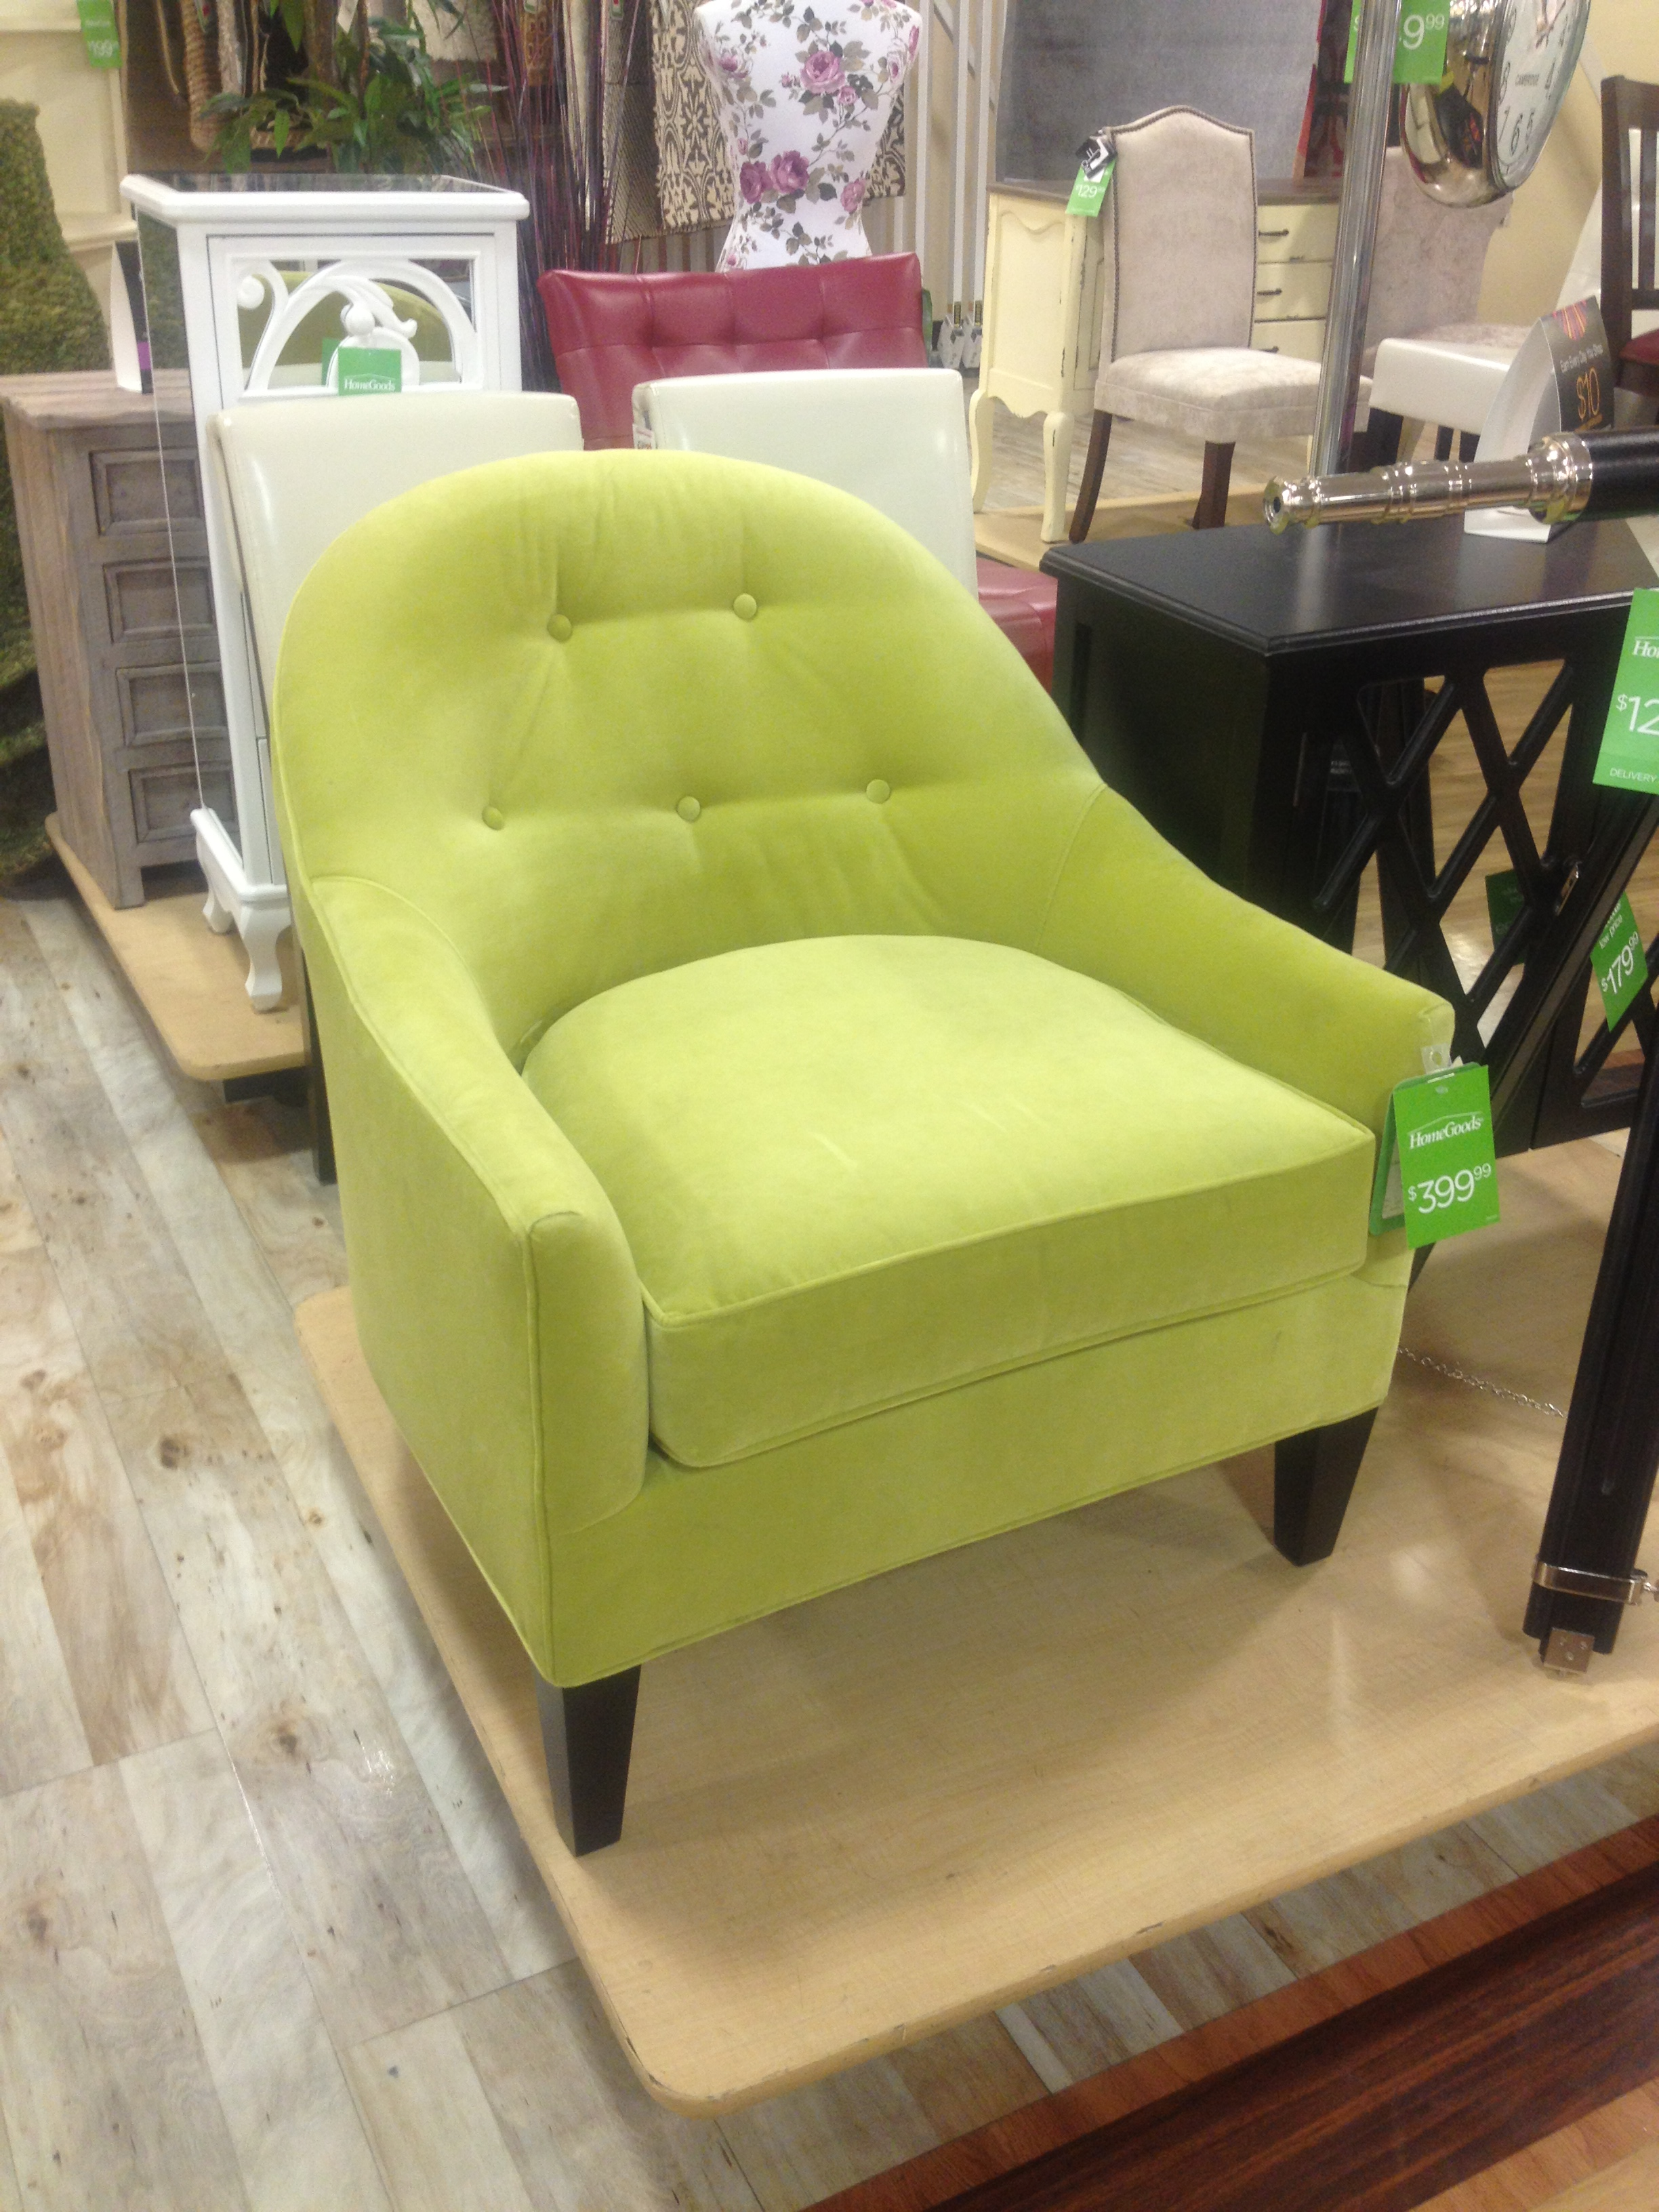 Home Decor in Lime Green